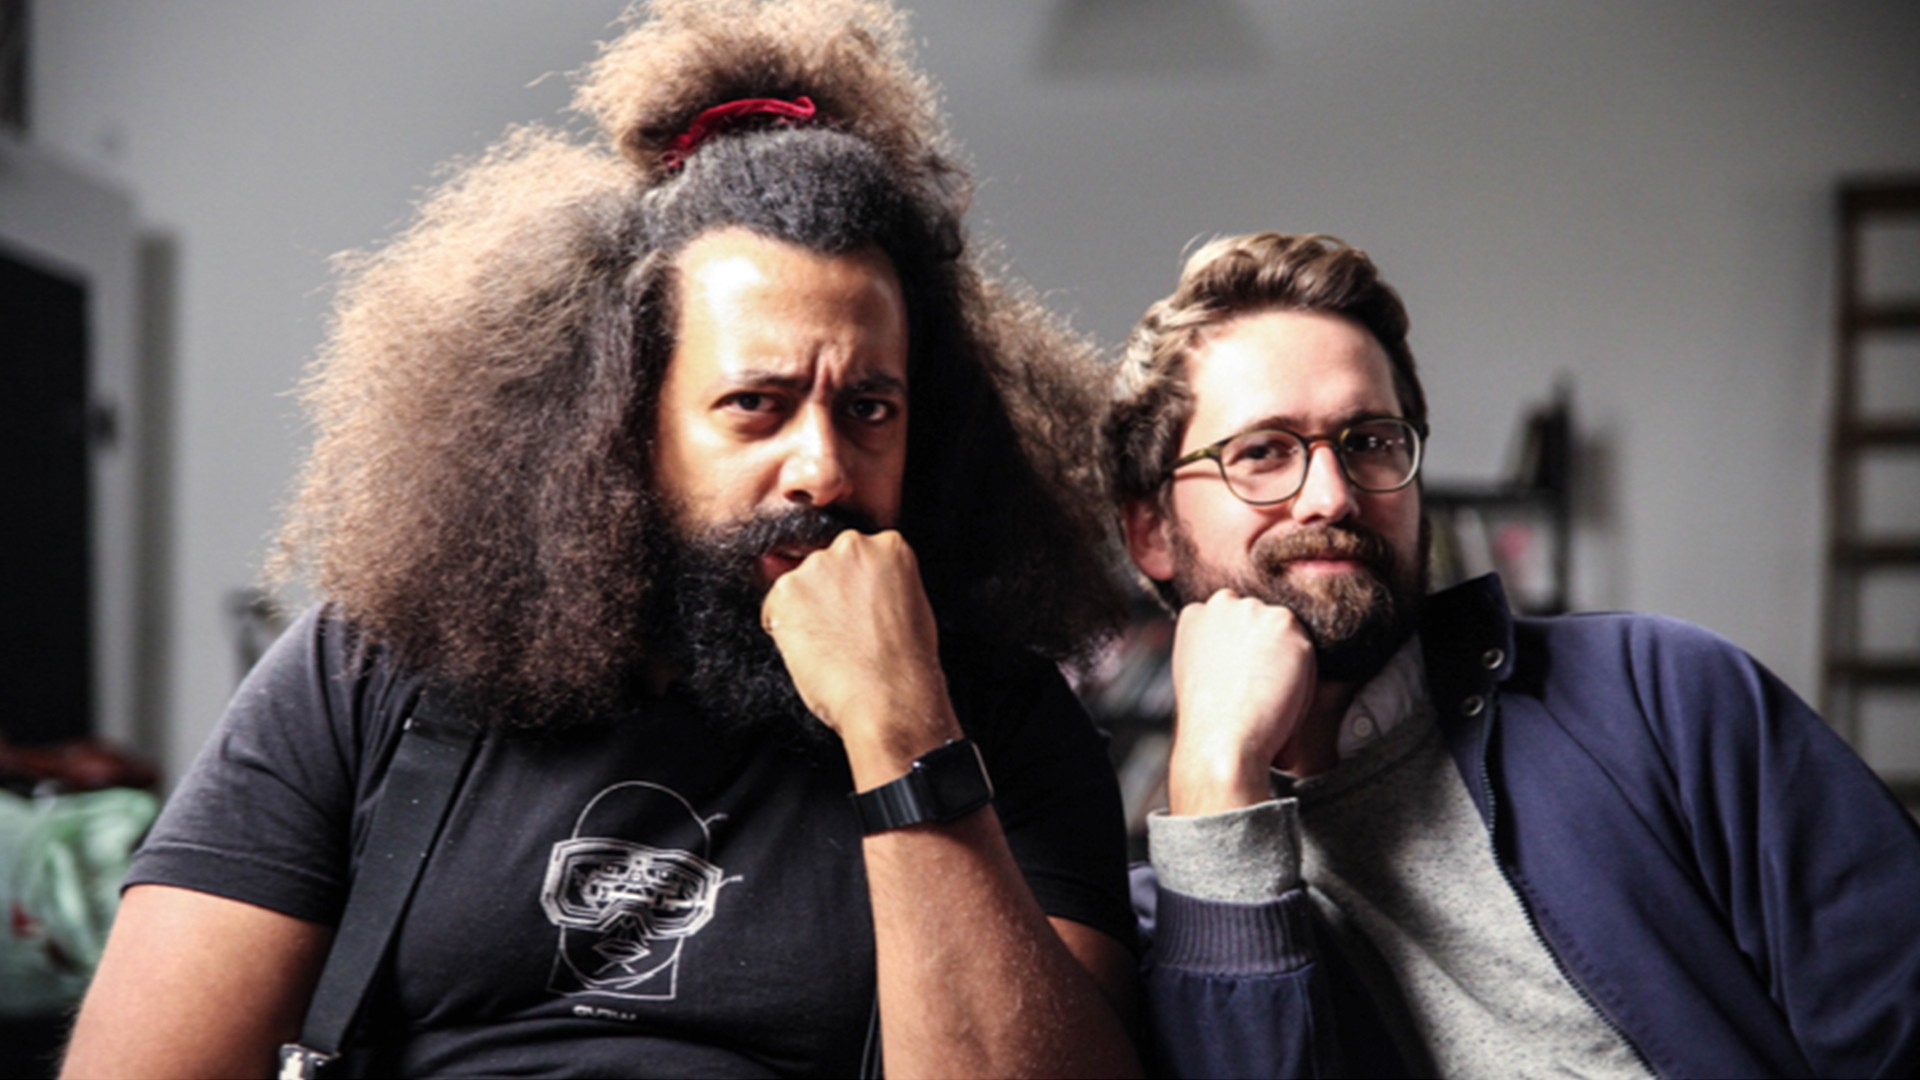 Reggie Watts and Benjamin Dickinson on the Dystopian Future